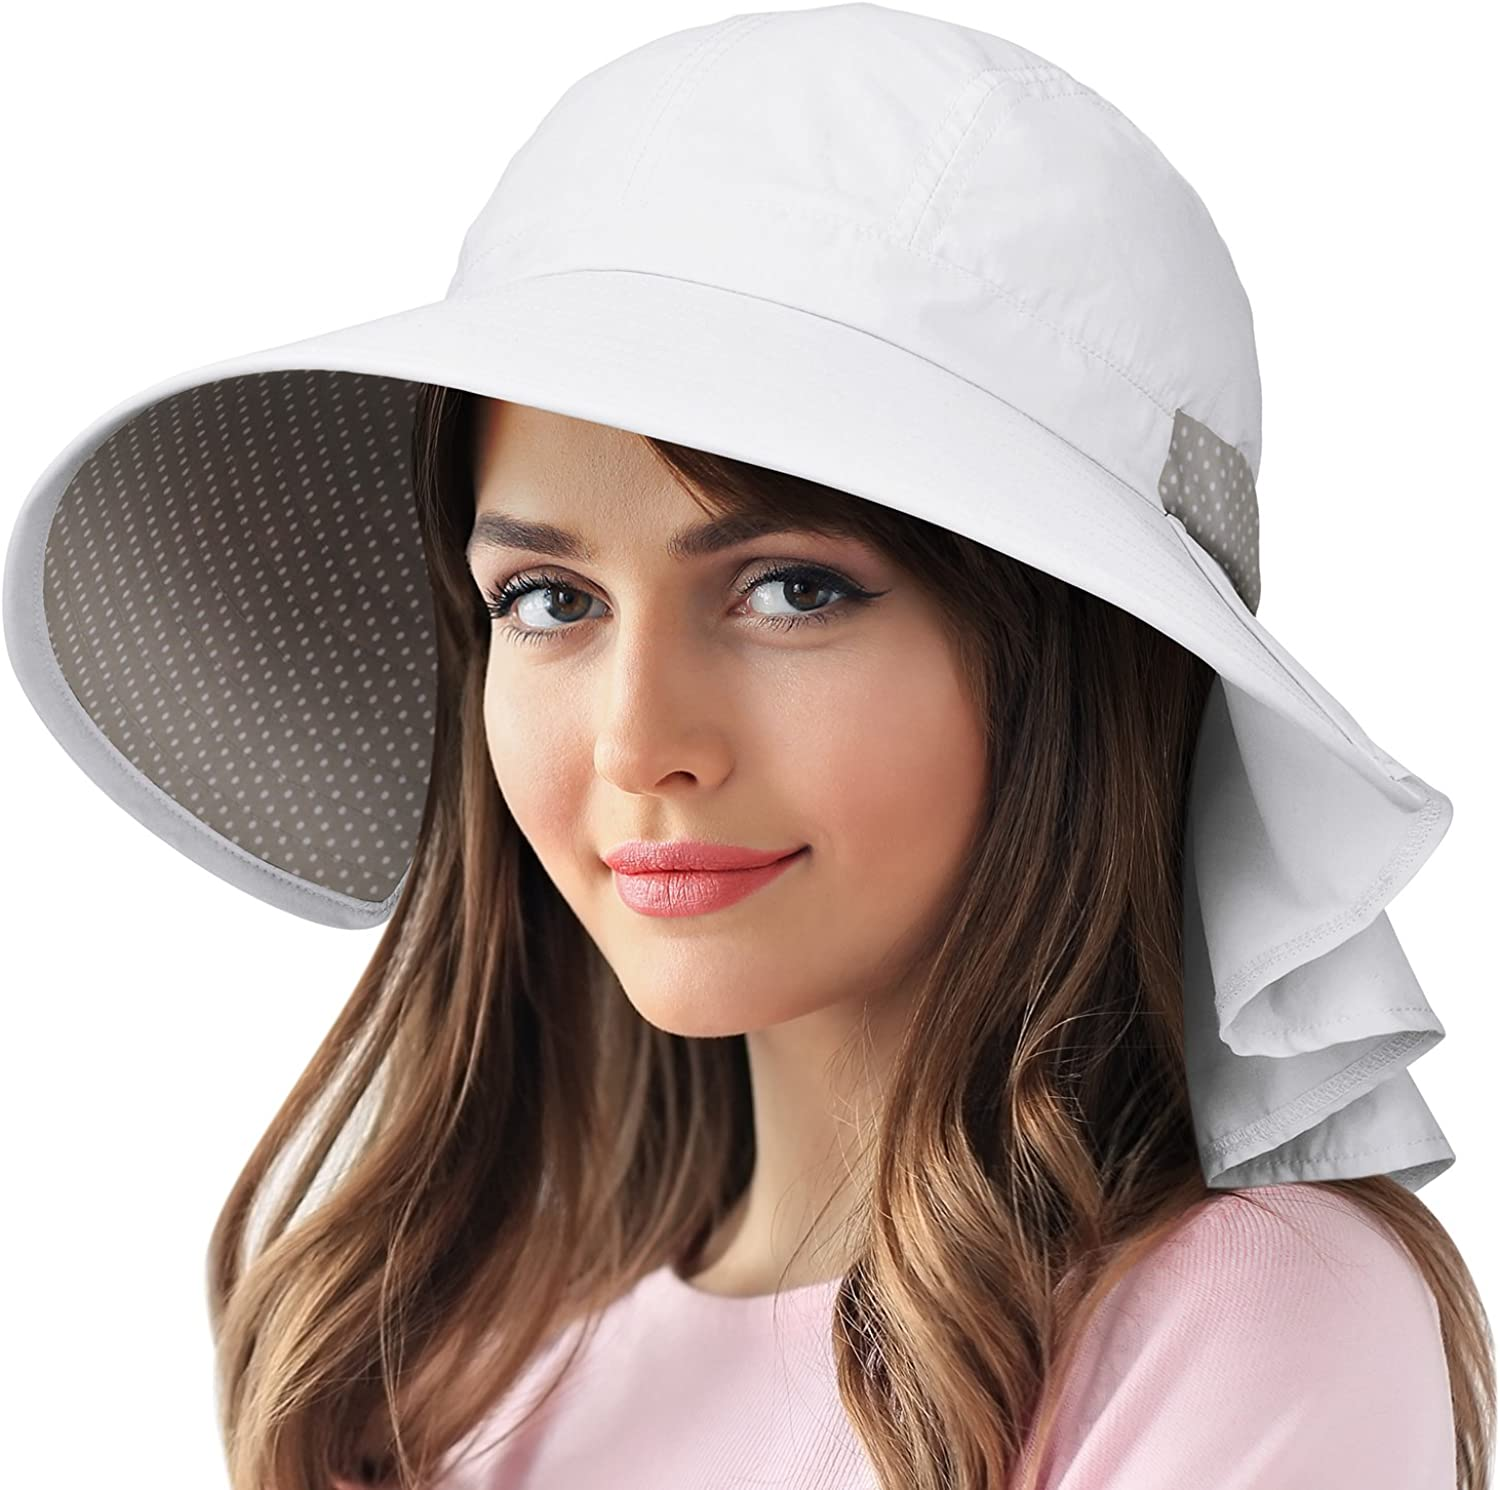 Catalonia Women's Wide Brim Sun Predection Hats with Flap Neck Cover for Traveling Hiking Safari Boating Driving Gardening